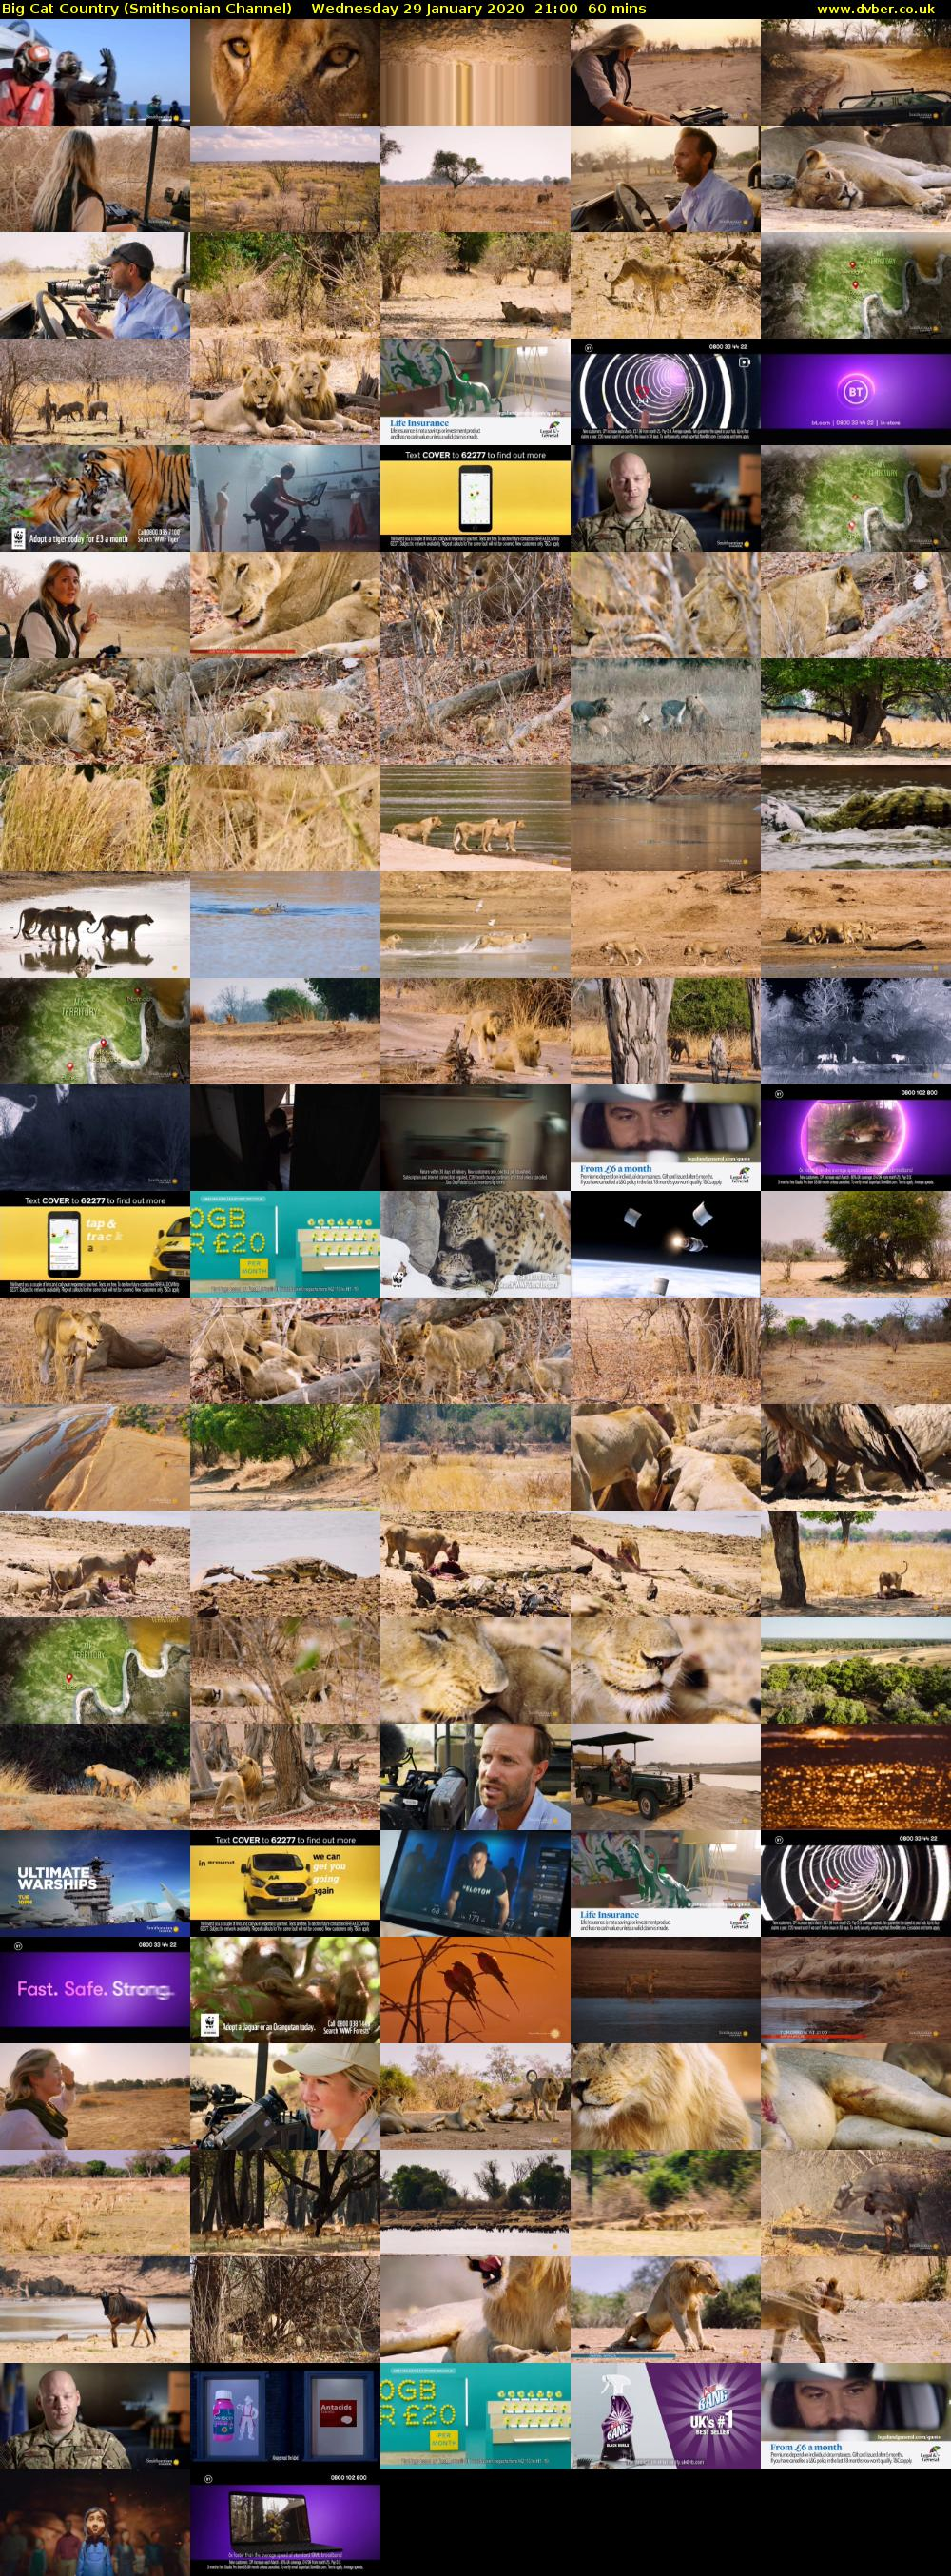 Big Cat Country (Smithsonian Channel) Wednesday 29 January 2020 21:00 - 22:00